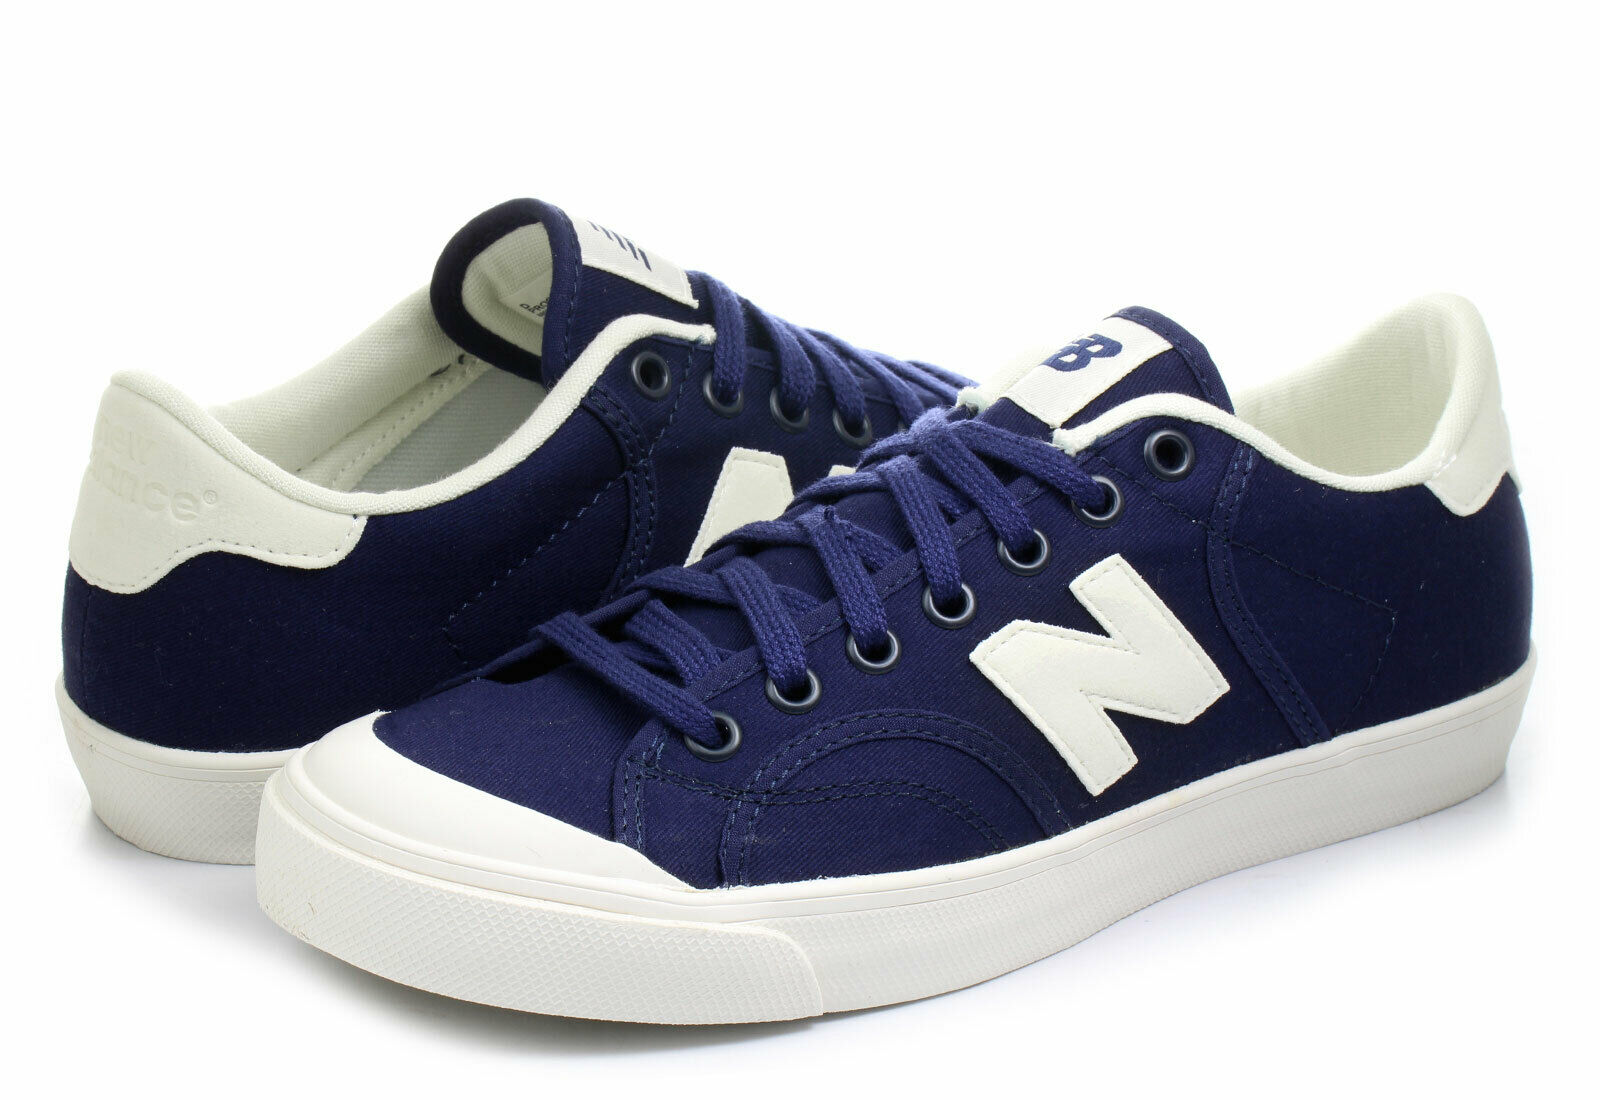 NEW BALANCE Sneakers PROCTSAC sk-2124 kn1589 Navy bluee Low top US mens size 12